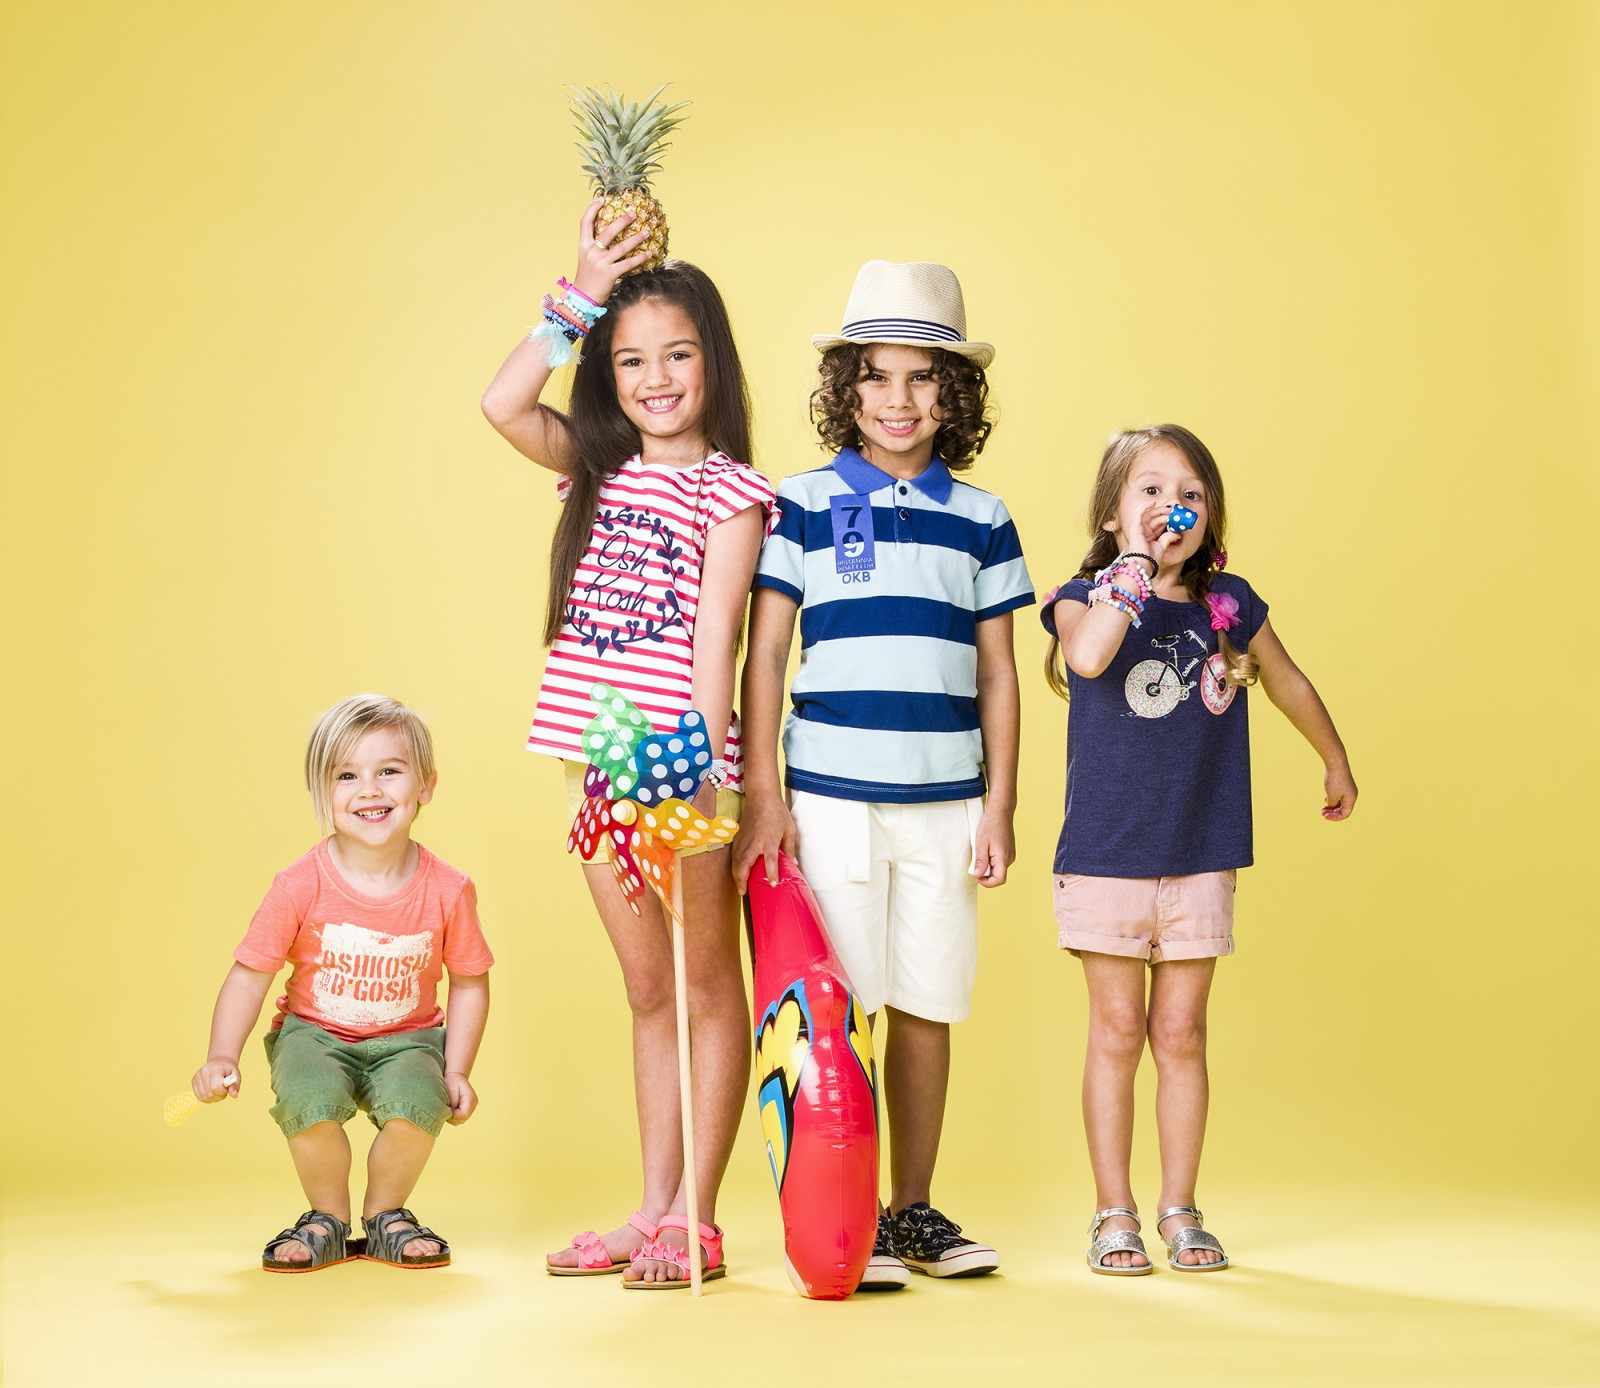 Sydney kids fashion photographer Michelle Young shoots Osh Kosh Australia in studio for Osh Kosh kids and childrens fashion for Summer 2015. Mix and Match for summer 2015 with Osh Kosh boys and girls...